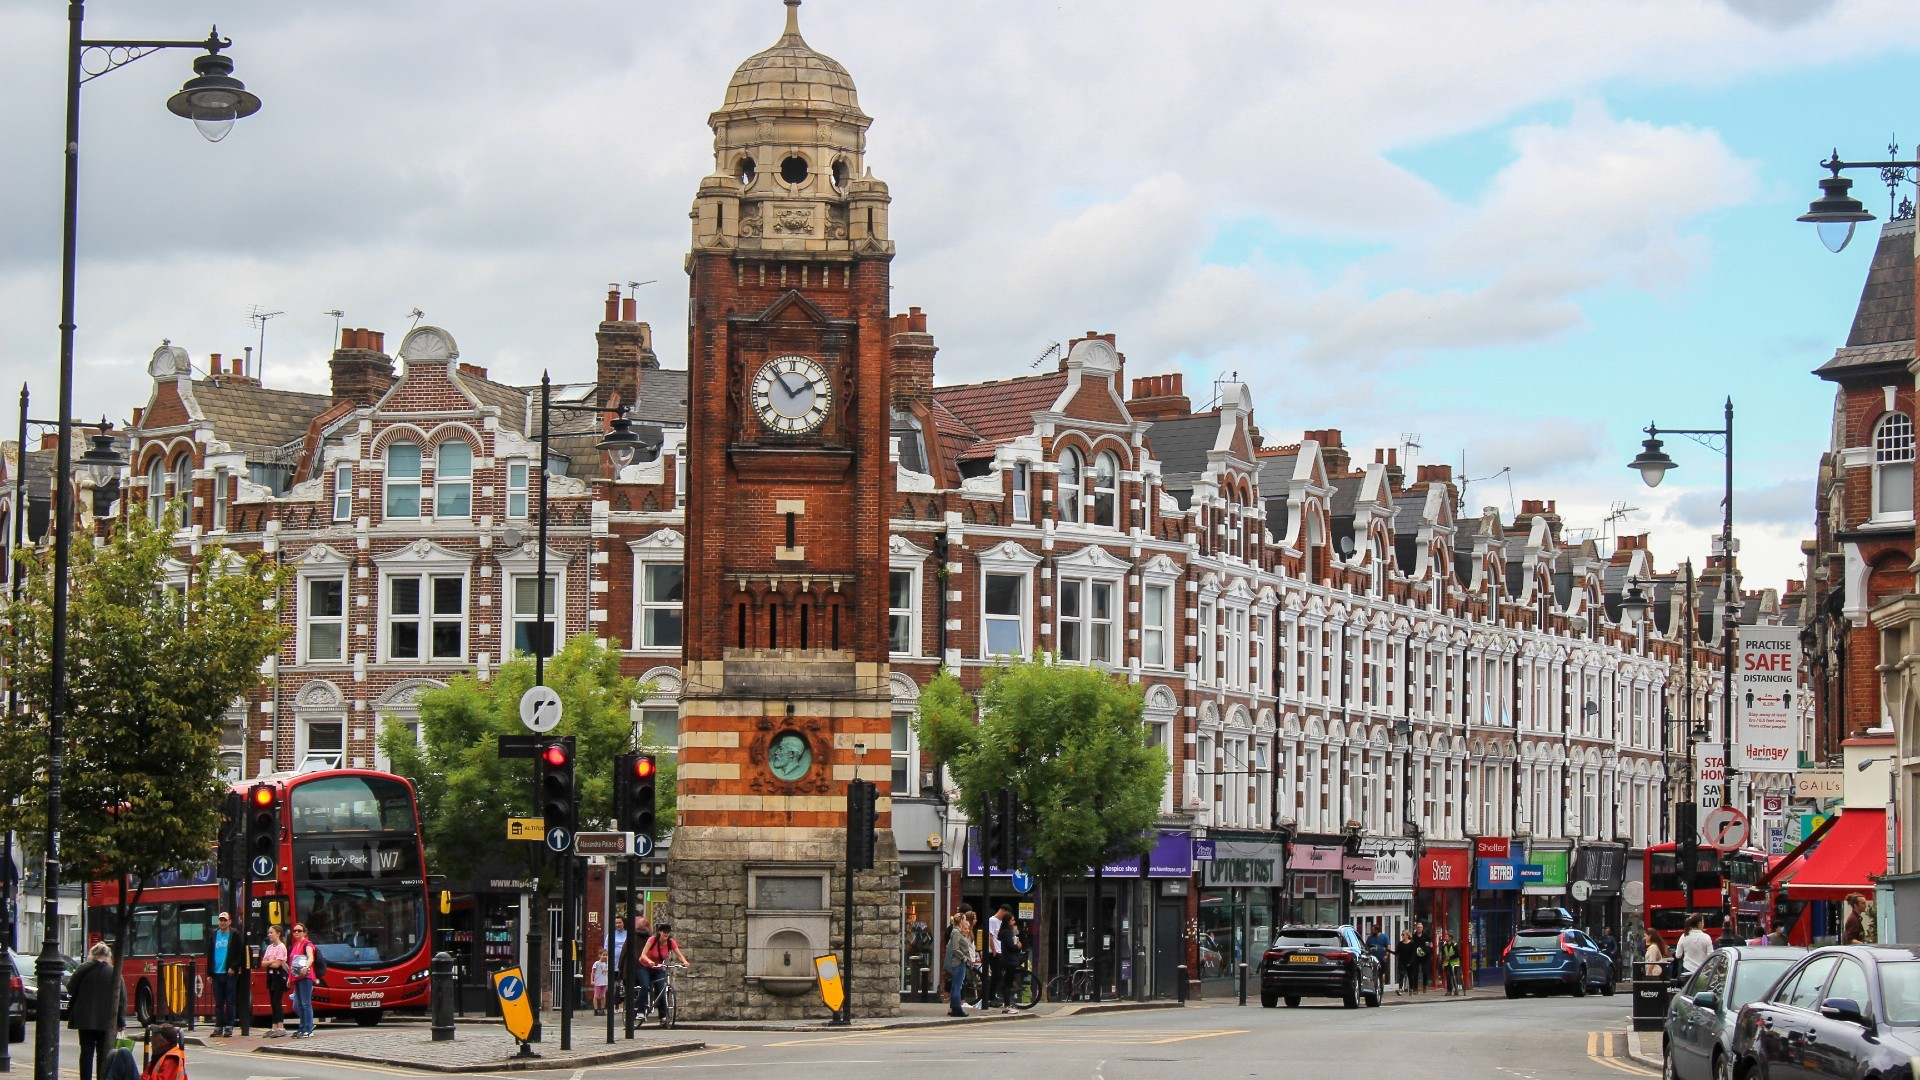 The very best of Crouch End, picked by a clued-up local